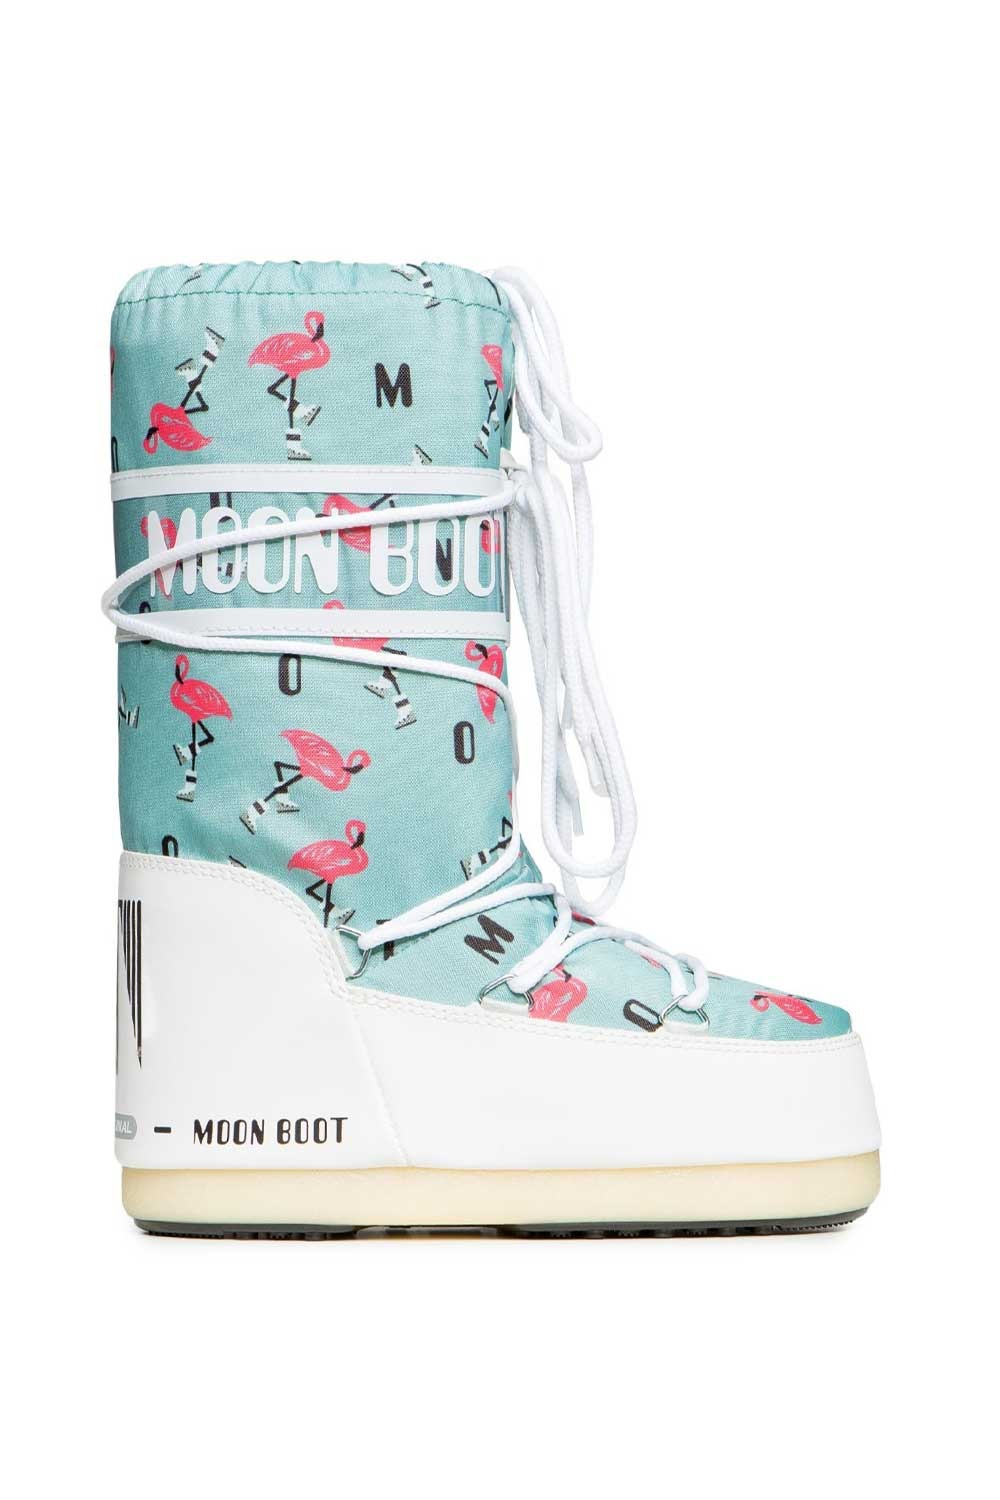 문부츠 키즈 방한부츠 JR 걸 플라밍고_MOONBOOT YOUTH MOON BOOT JR GIRL FLAMINGO_WHITE/LIGHT GREEN_VMQ873WH_AVMQ873WH